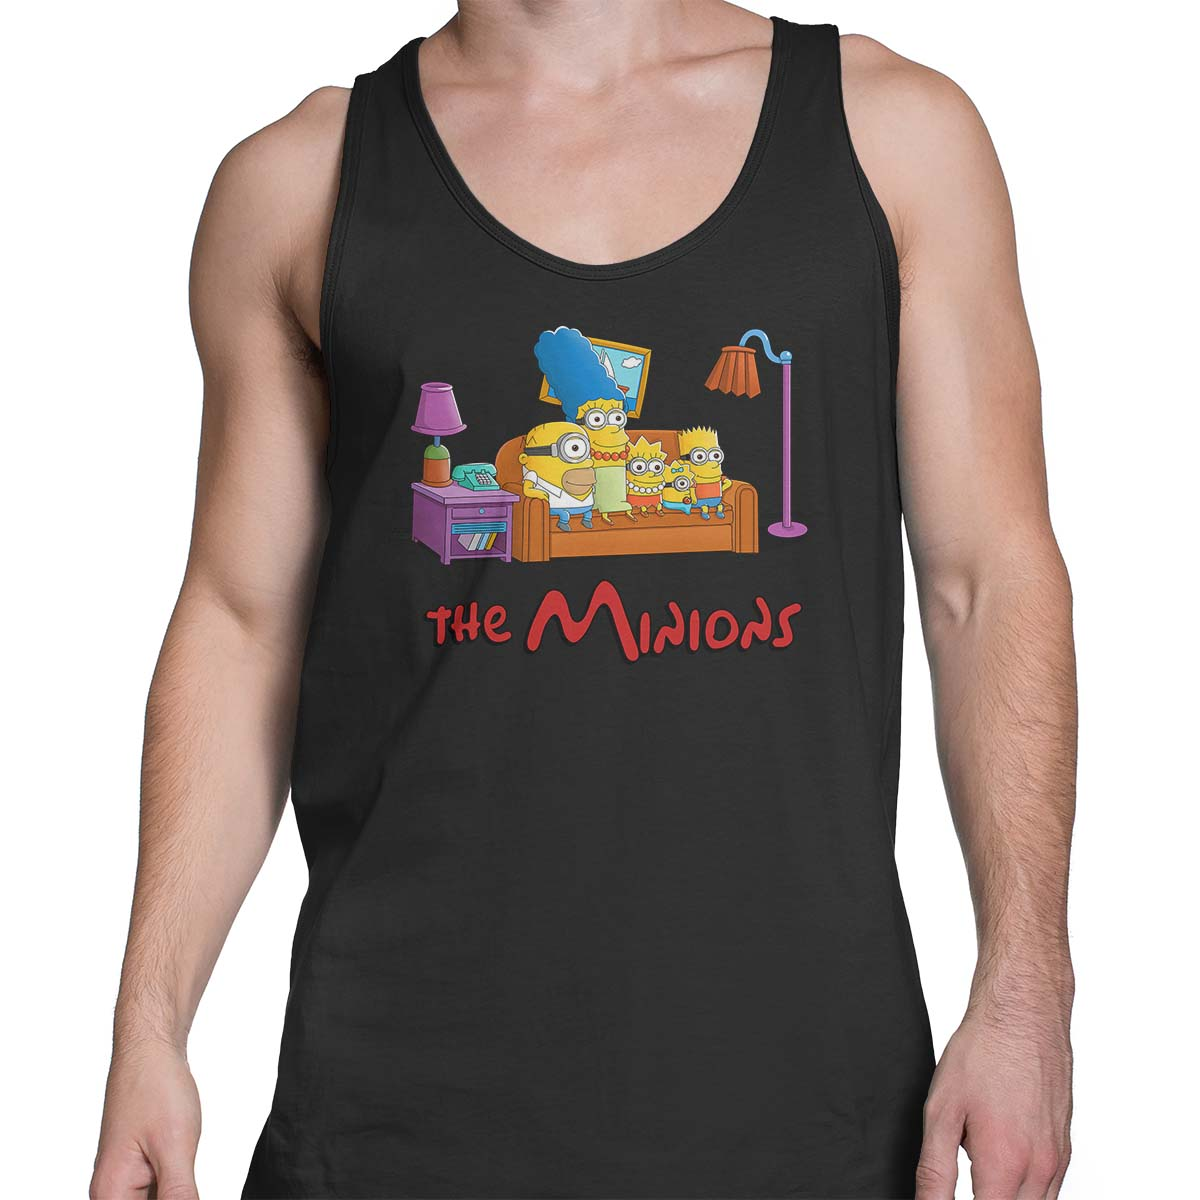 The Minions Men's Tank Top